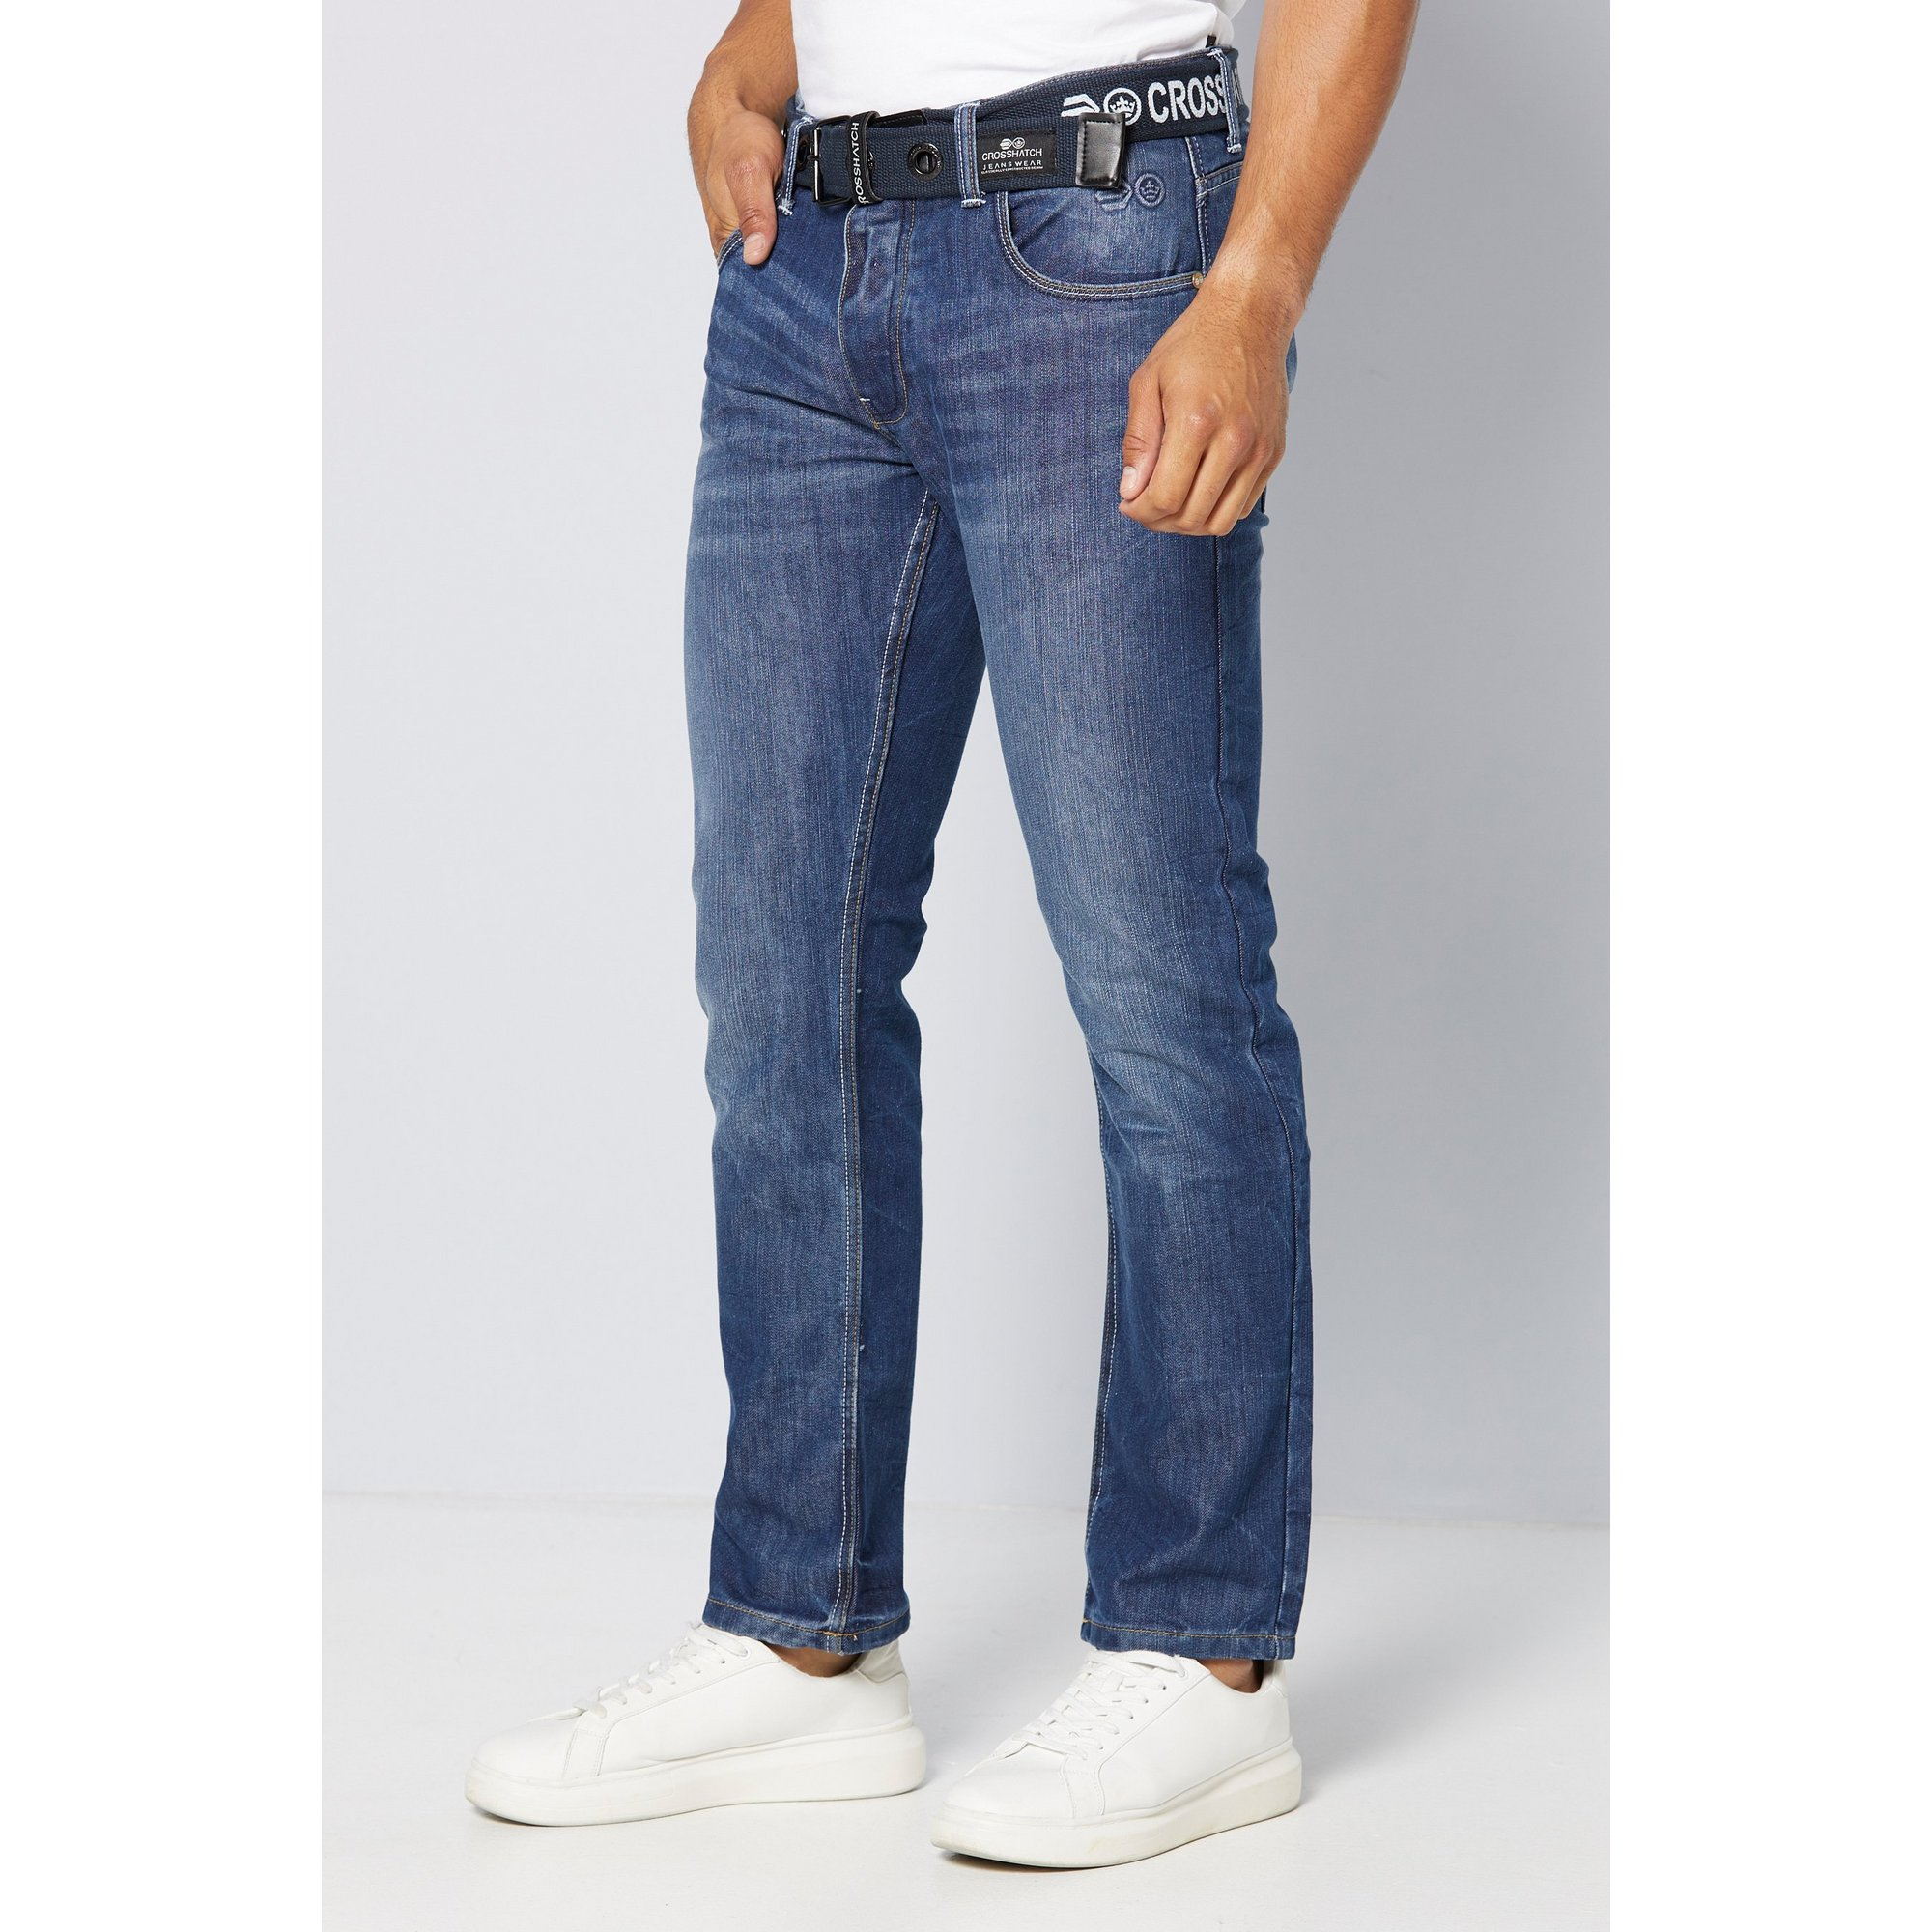 Image of Crosshatch Belted Back Print Straight Fit Jeans